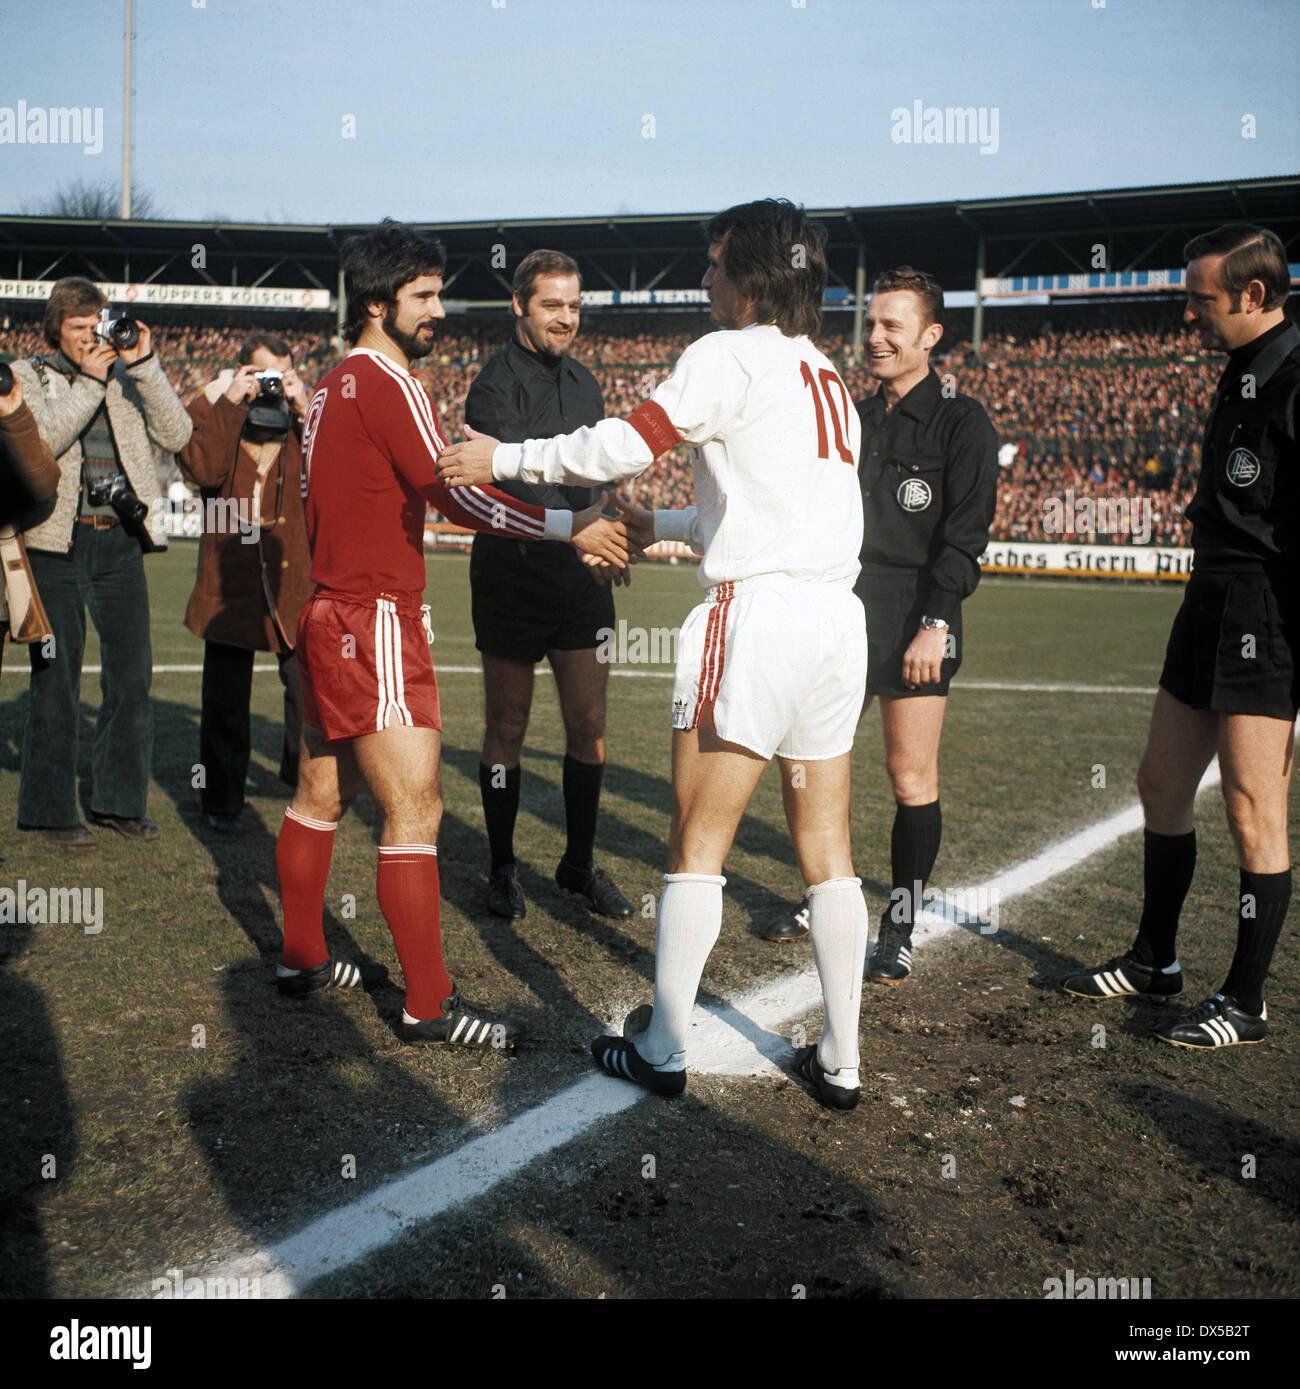 football, Bundesliga, 1974/1975, Radrennbahn Muengersdorf, 1. FC Cologne versus FC Bayern Munich 1:0, welcome, team leaders Gerd Mueller (FCB) left and Wolfgang Overath (Koeln), behind referee Guenter Linn and assistants - Stock Image